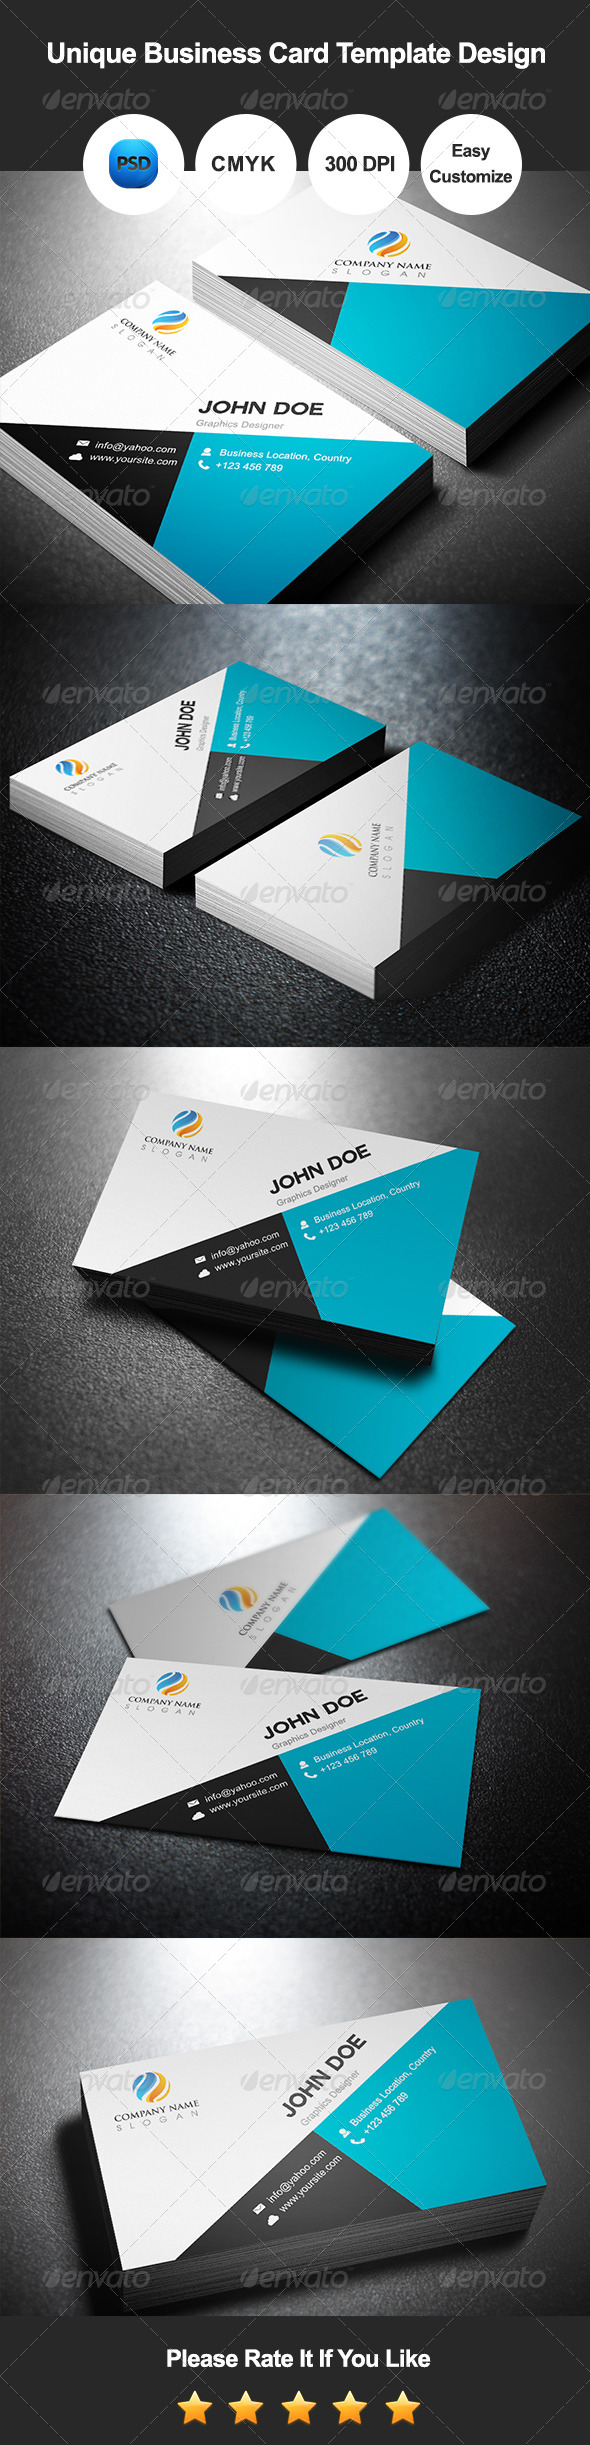 GraphicRiver Unique Business Card Template Design 7534745